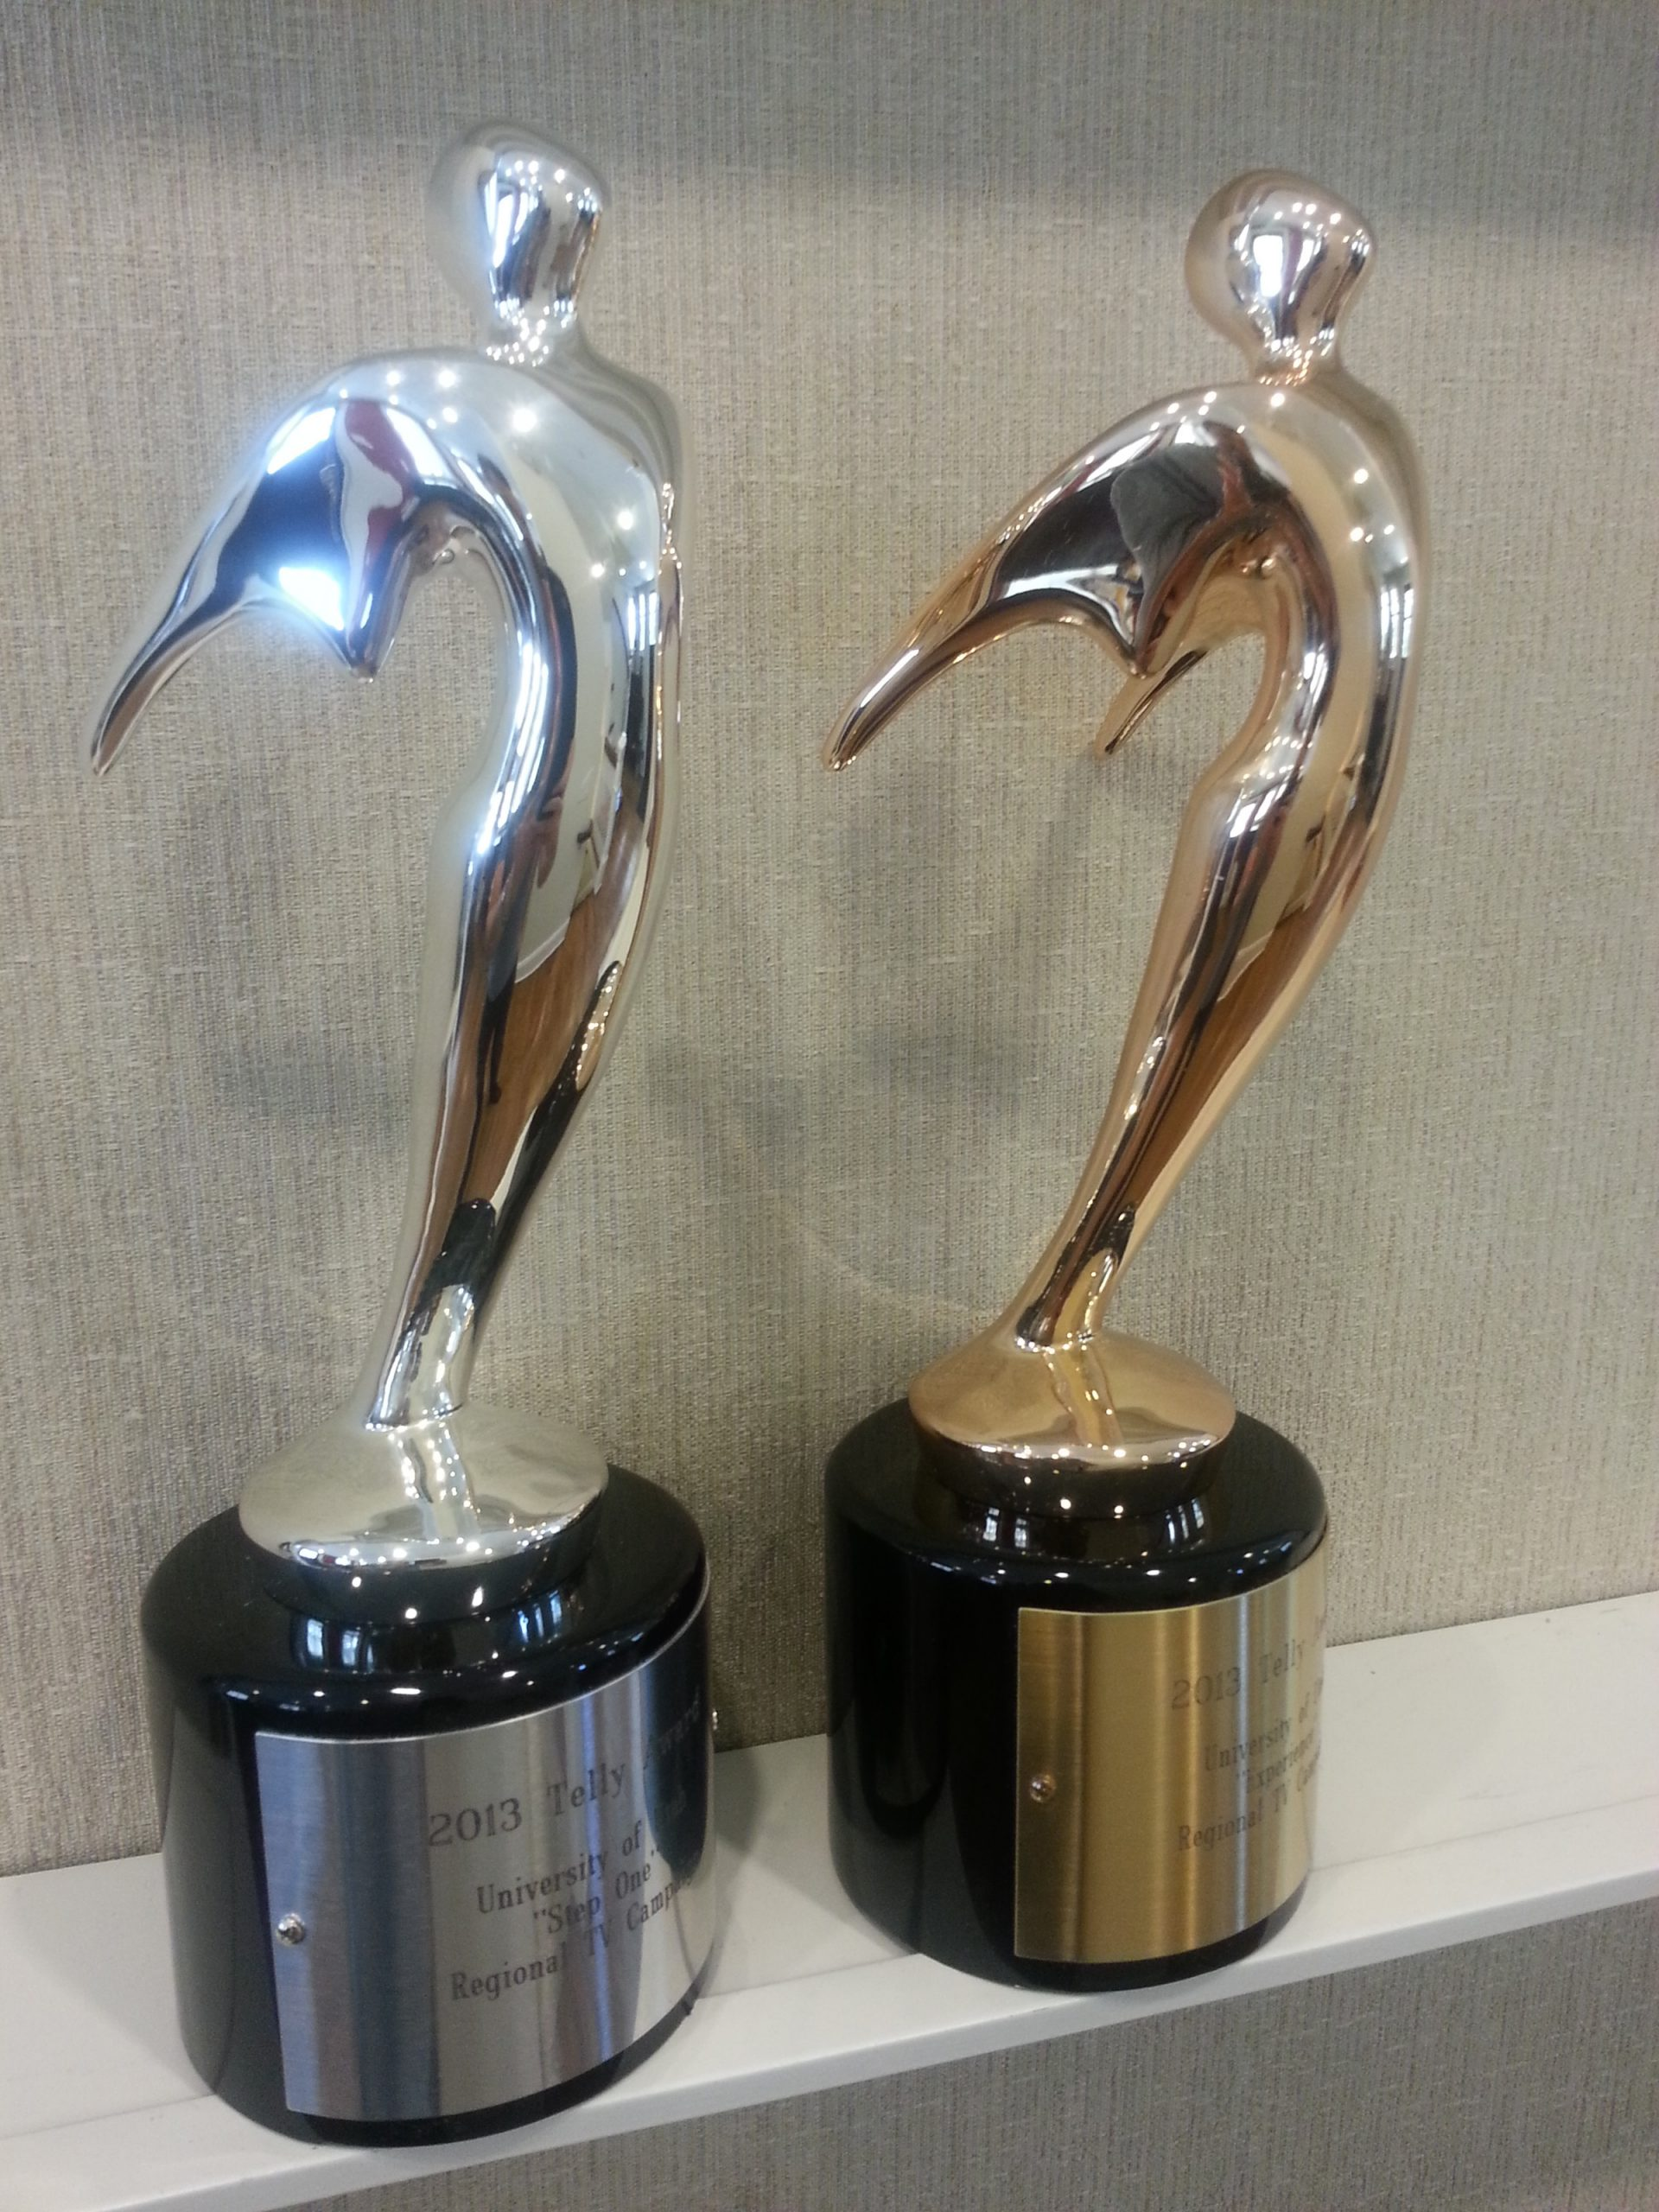 2013 Silver and Bronze Telly Awards.